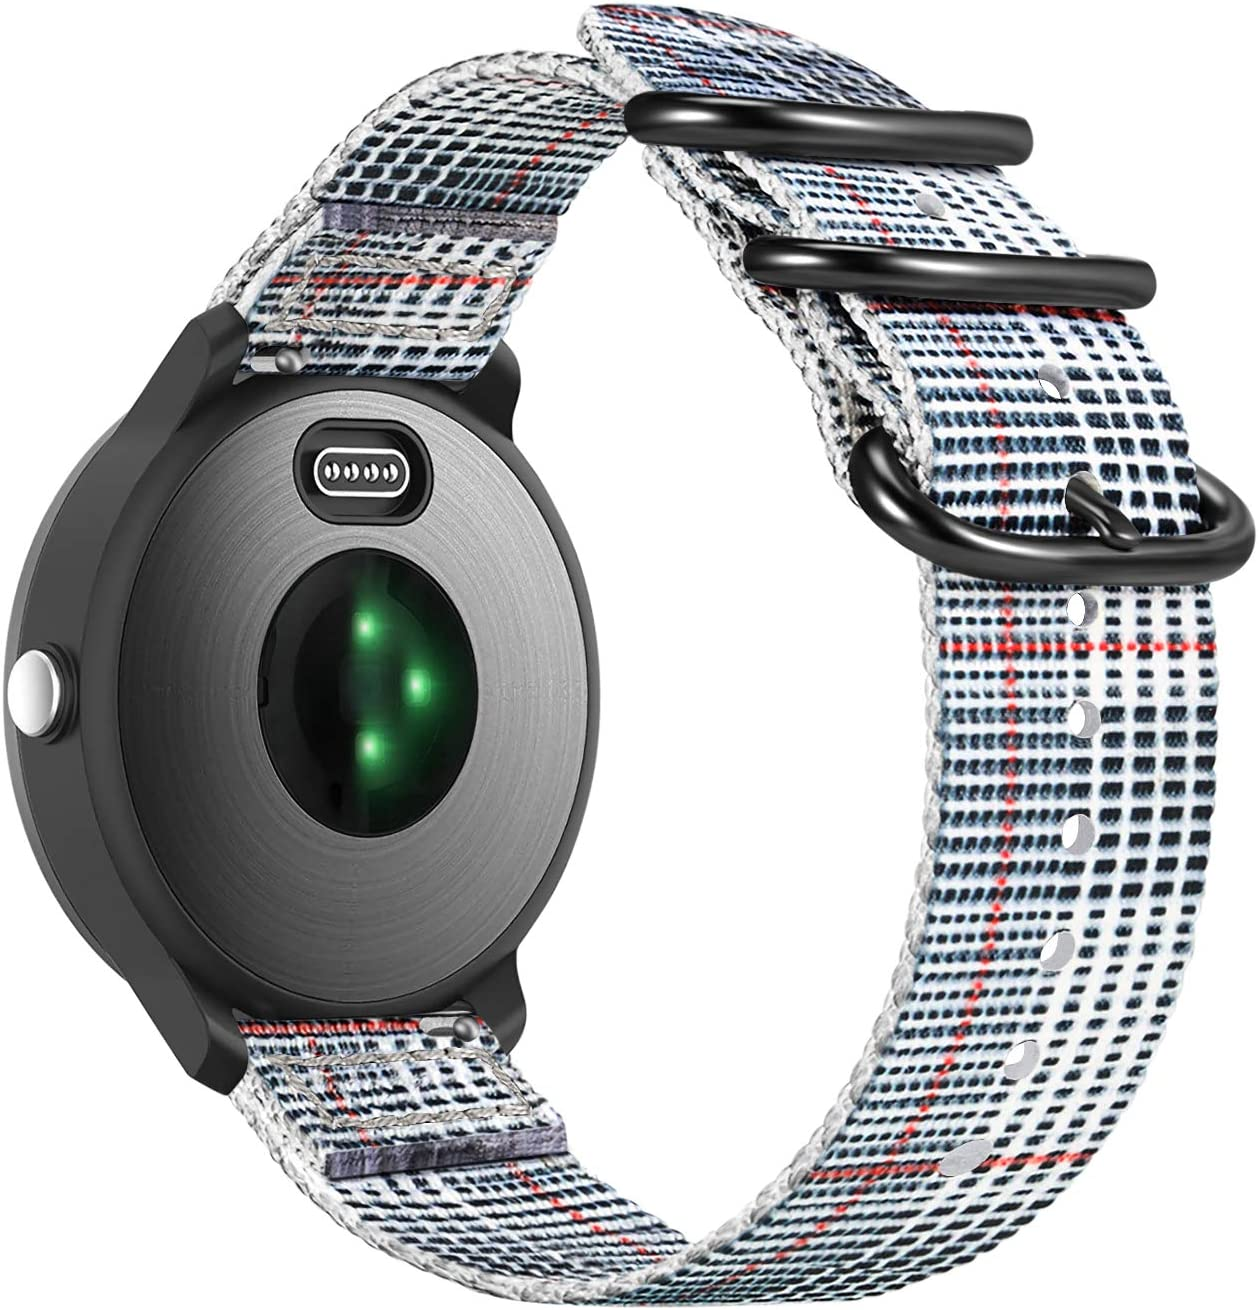 Fintie Band Compatible with Garmin Vivoactive 3, 20mm Soft Nylon Replacement Strap Band Compatible with Garmin Vivoactive 3 / Vivoactive 3 Music/Forerunner 645 Music Smartwatch (Color-B)